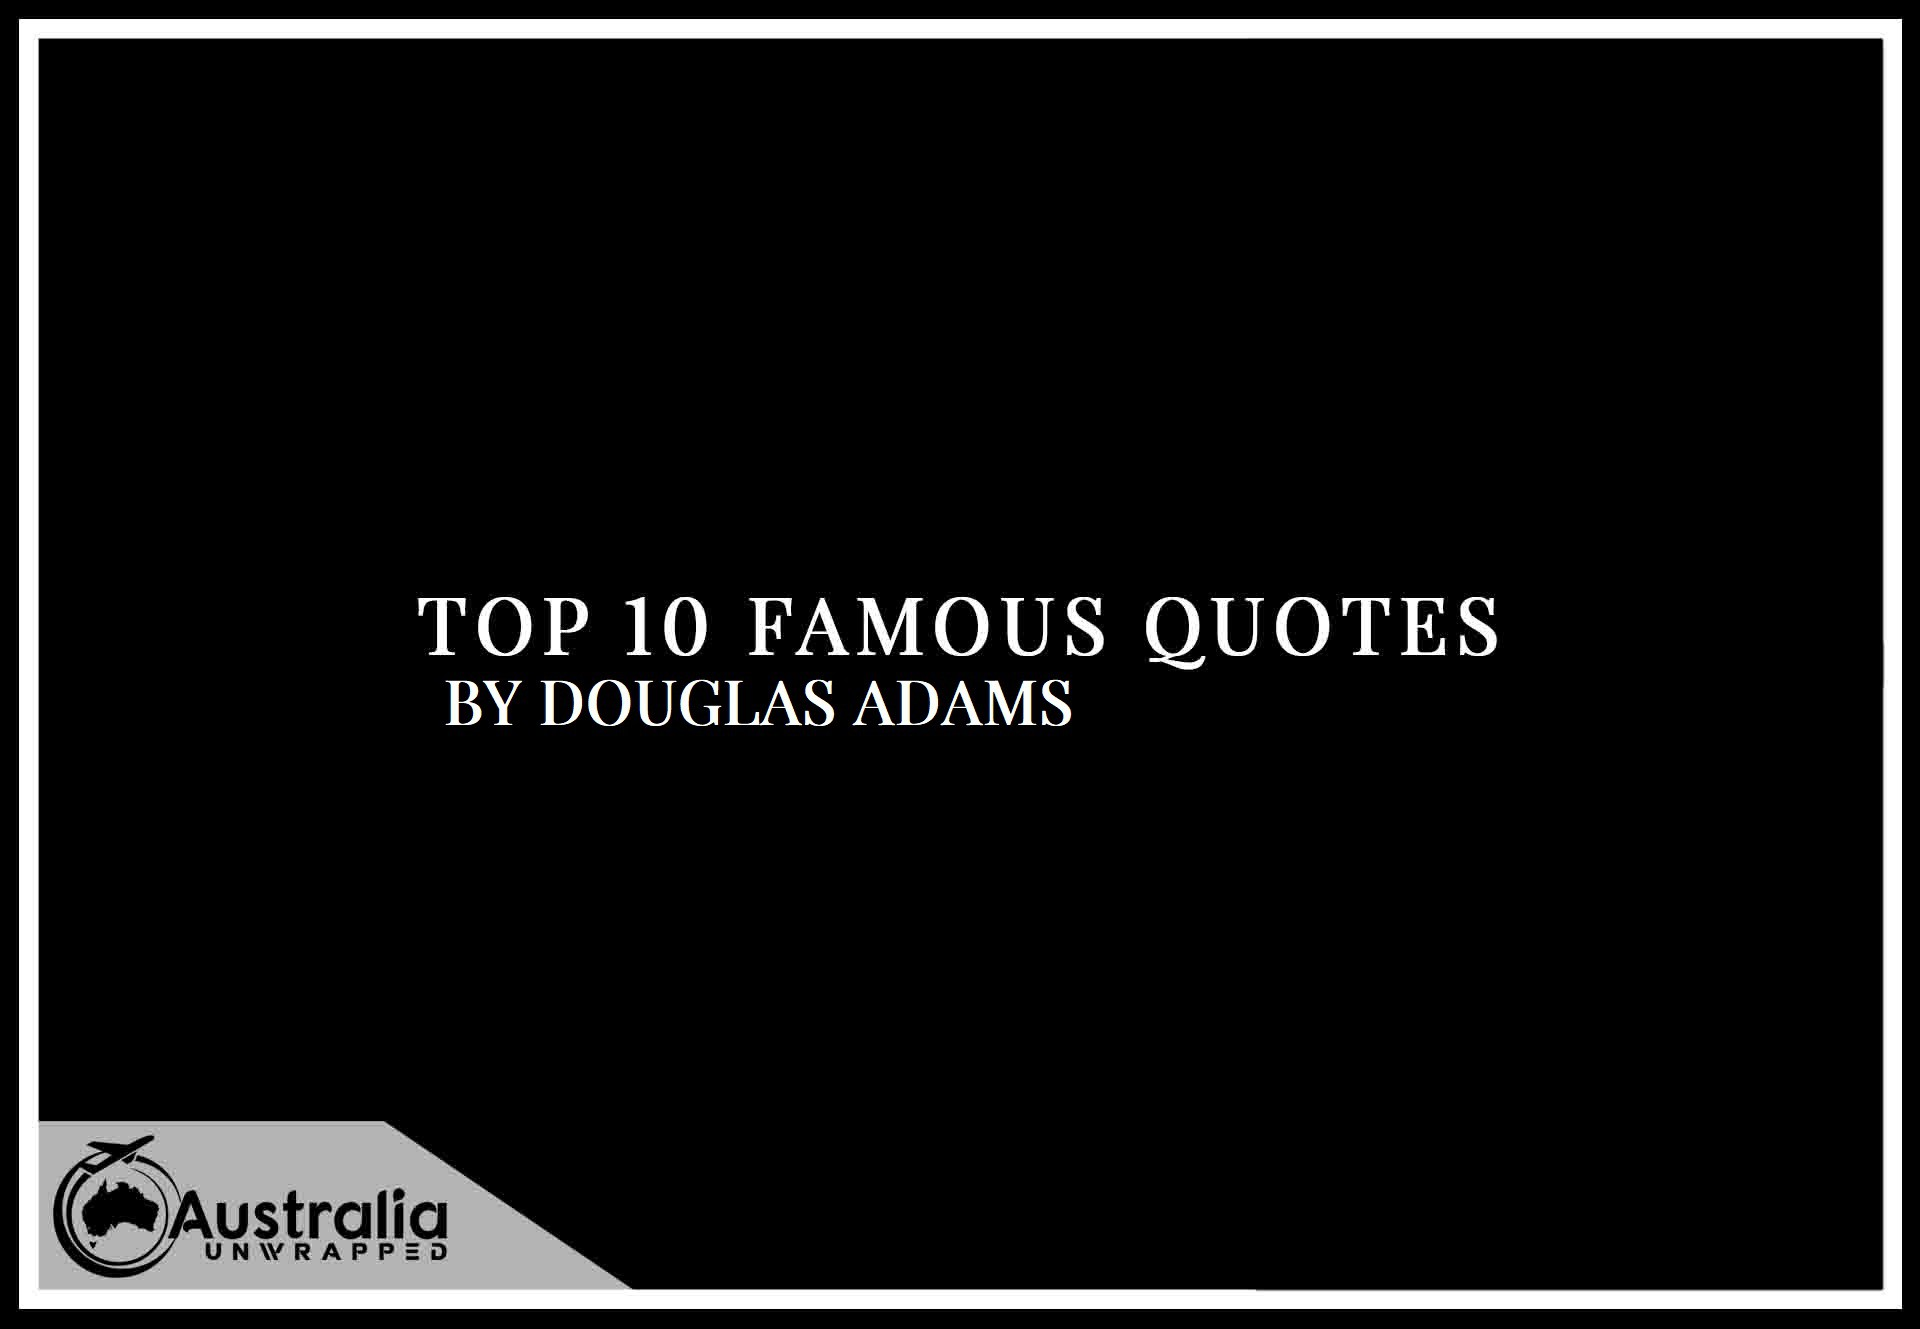 Top 10 Famous Quotes by Author douglas adams